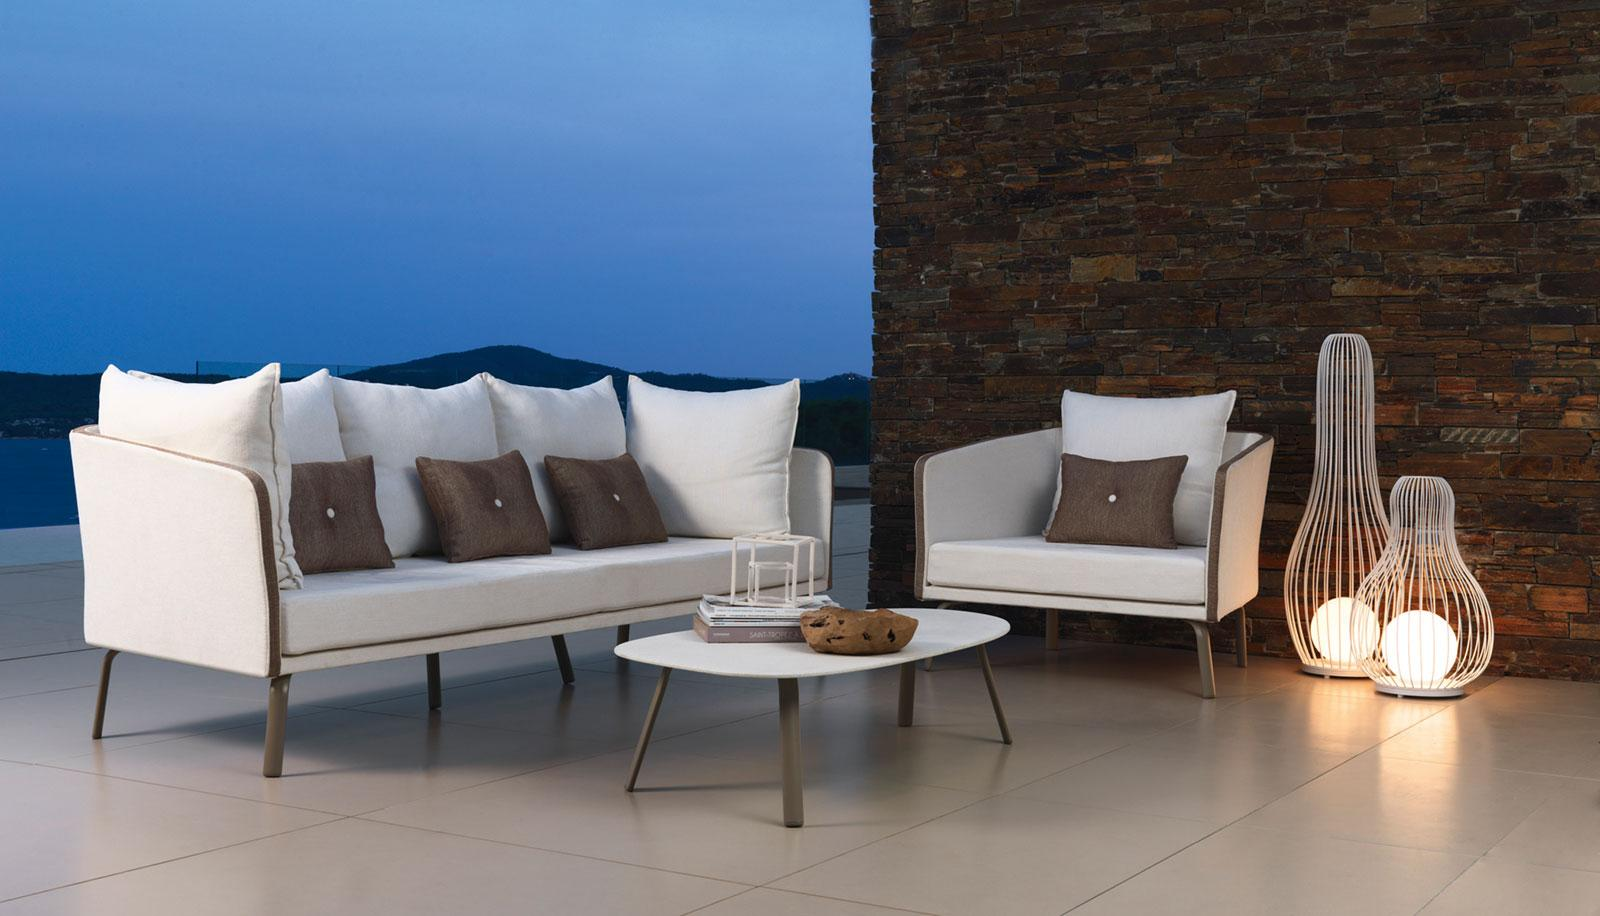 Luxury Outdoor Sofa Chairs Delivery Italia Couch Pool Side Garden Terrace Bar Hotel Furniture